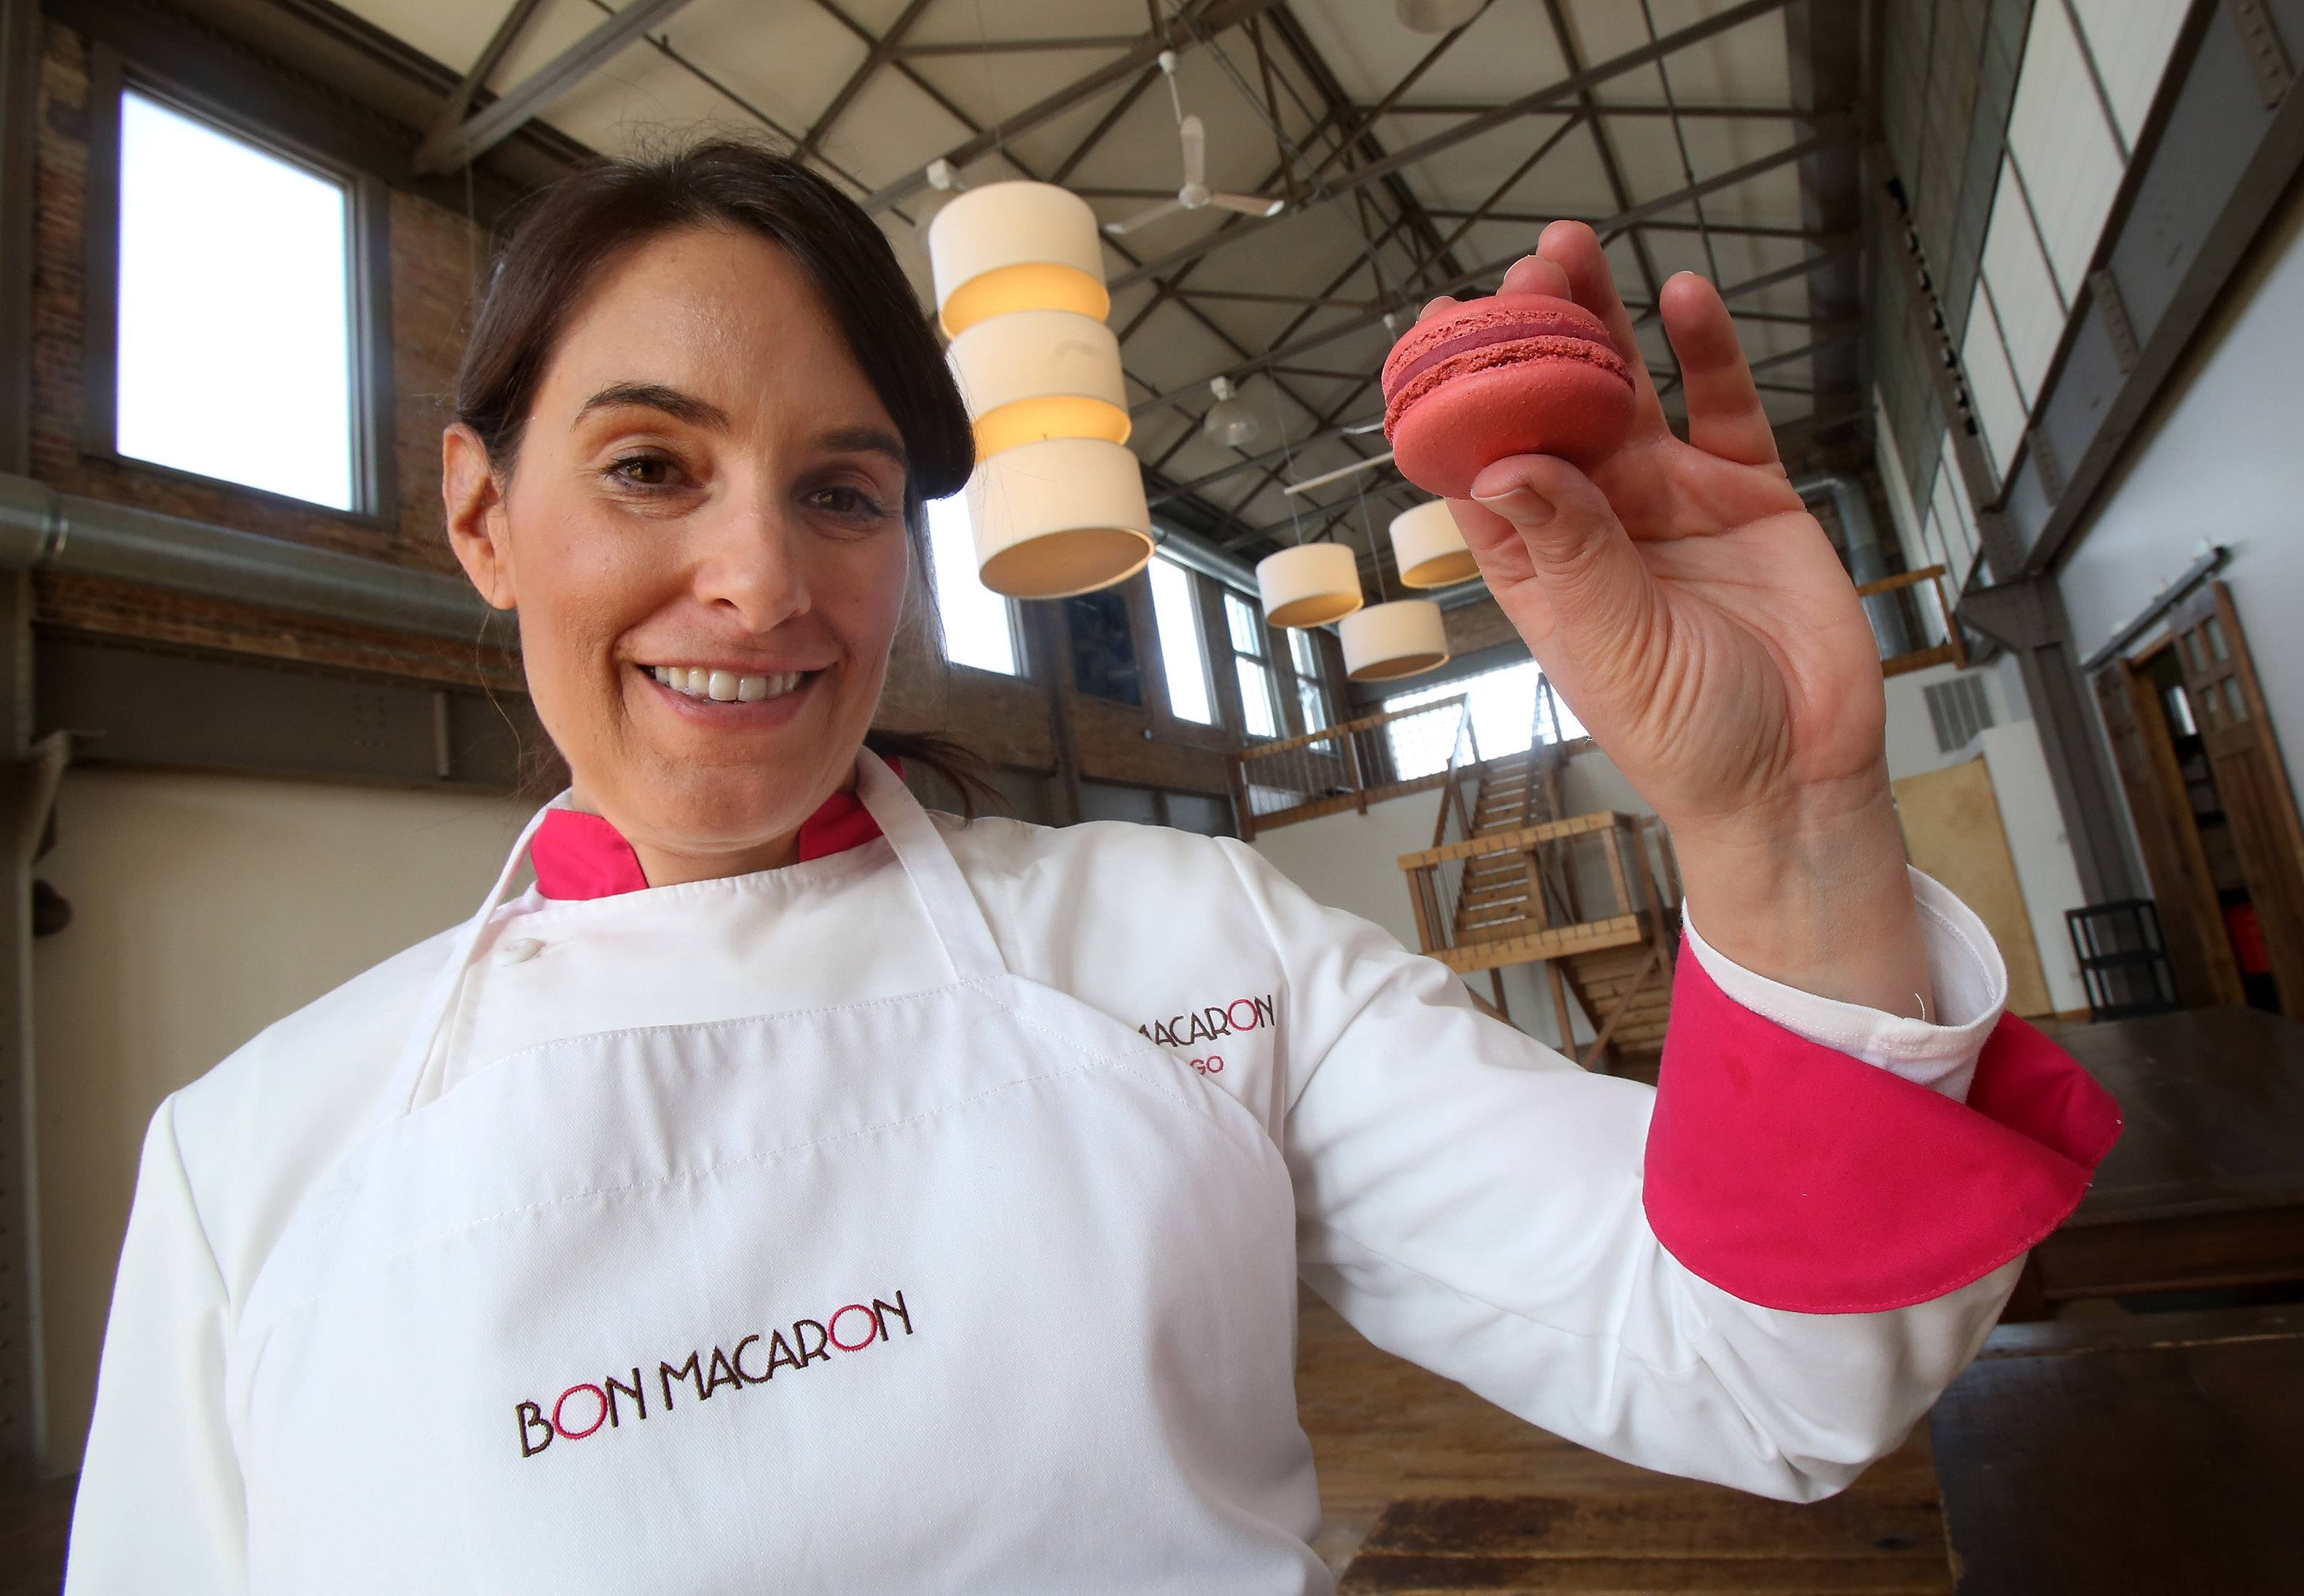 Catherine Cooper of Bon Macaron Chicago makes the delicate French cookies called macarons at Kitchen Chicago.